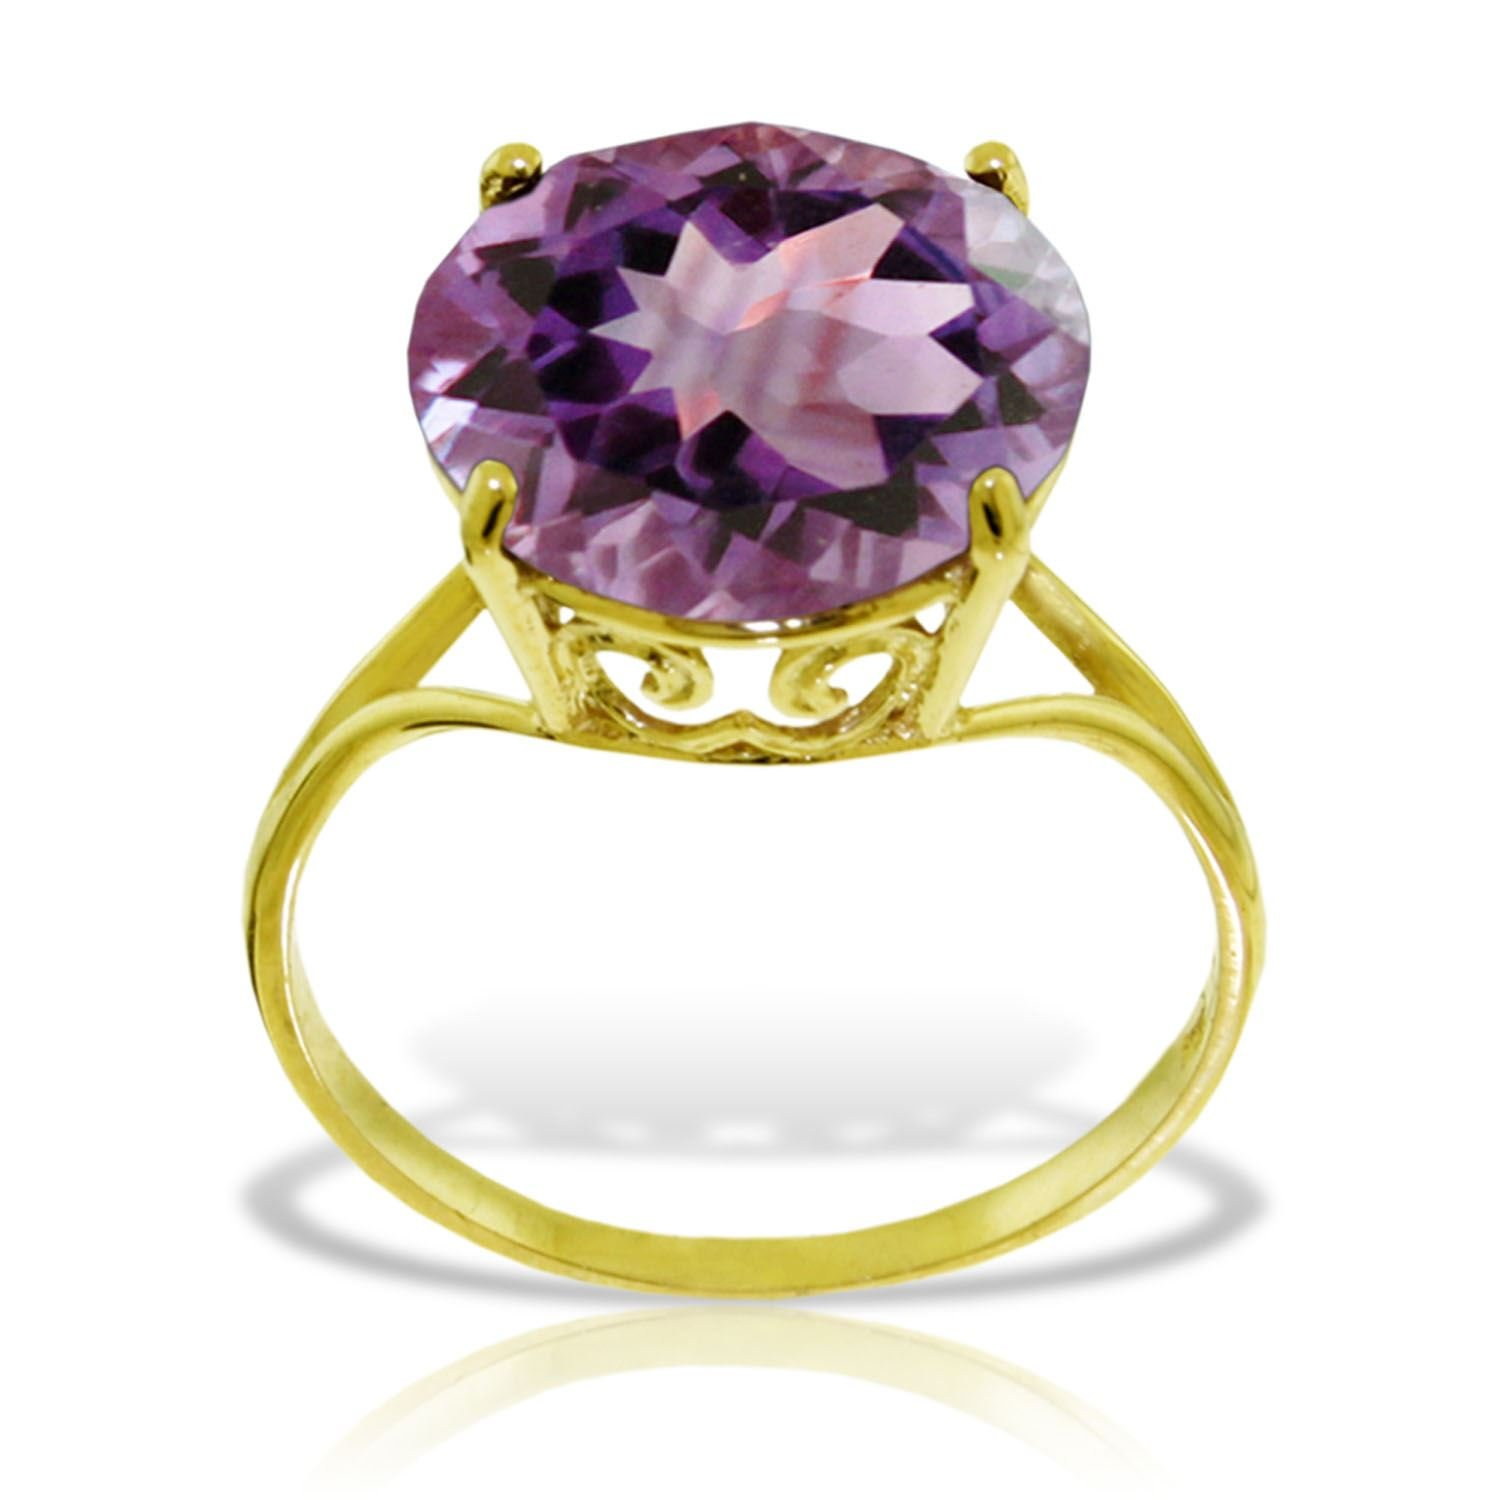 ALARRI 14K Solid Gold Ring with Natural 12.0 mm Round Amethyst With Ring Size 6.5